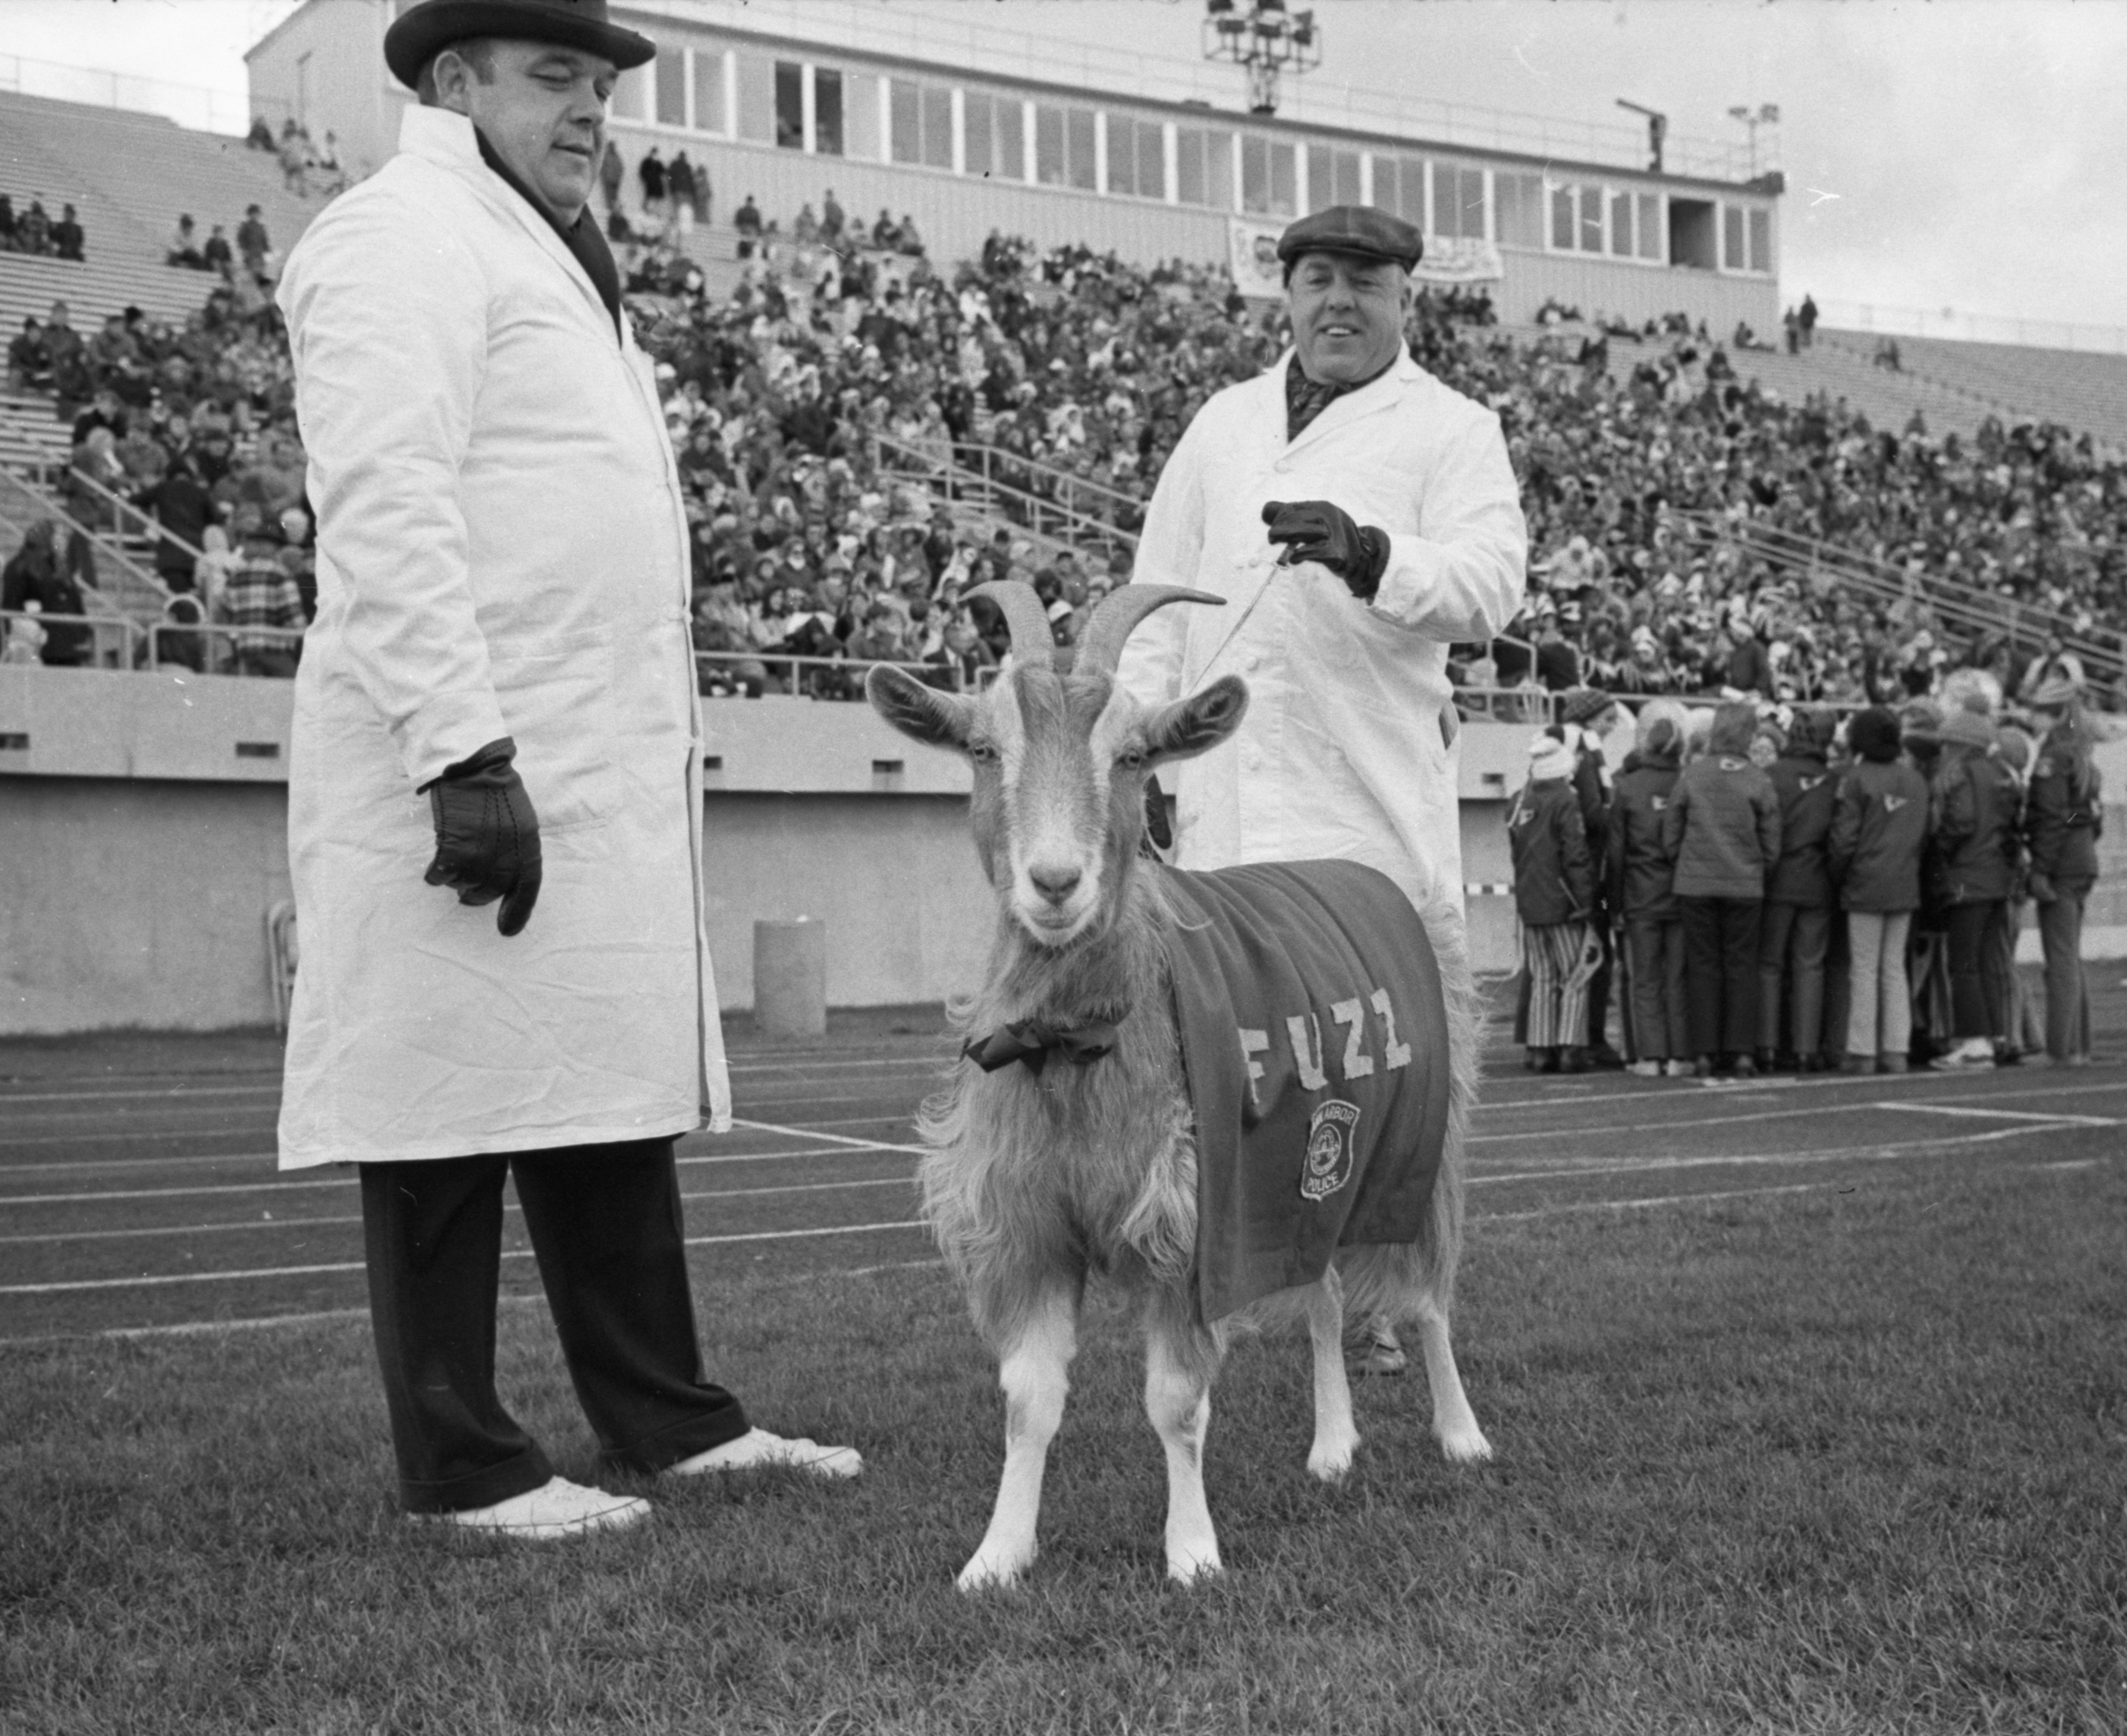 Ann Arbor Police Mascot 'Fuzz' Watches Annual Pig Bowl Game, November 1971 image